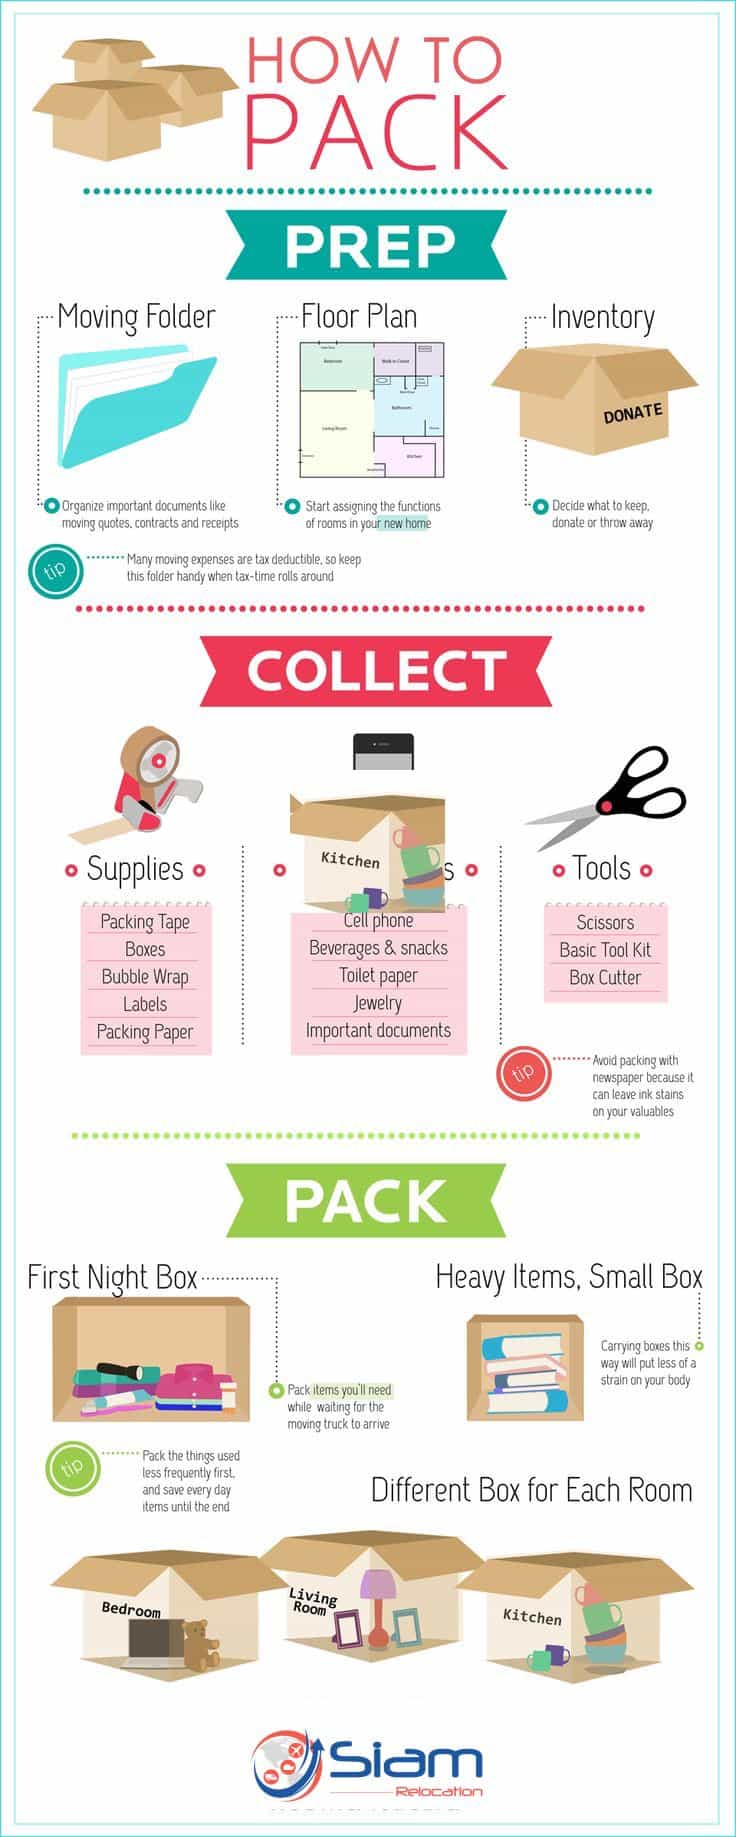 international-move-how-to-pack